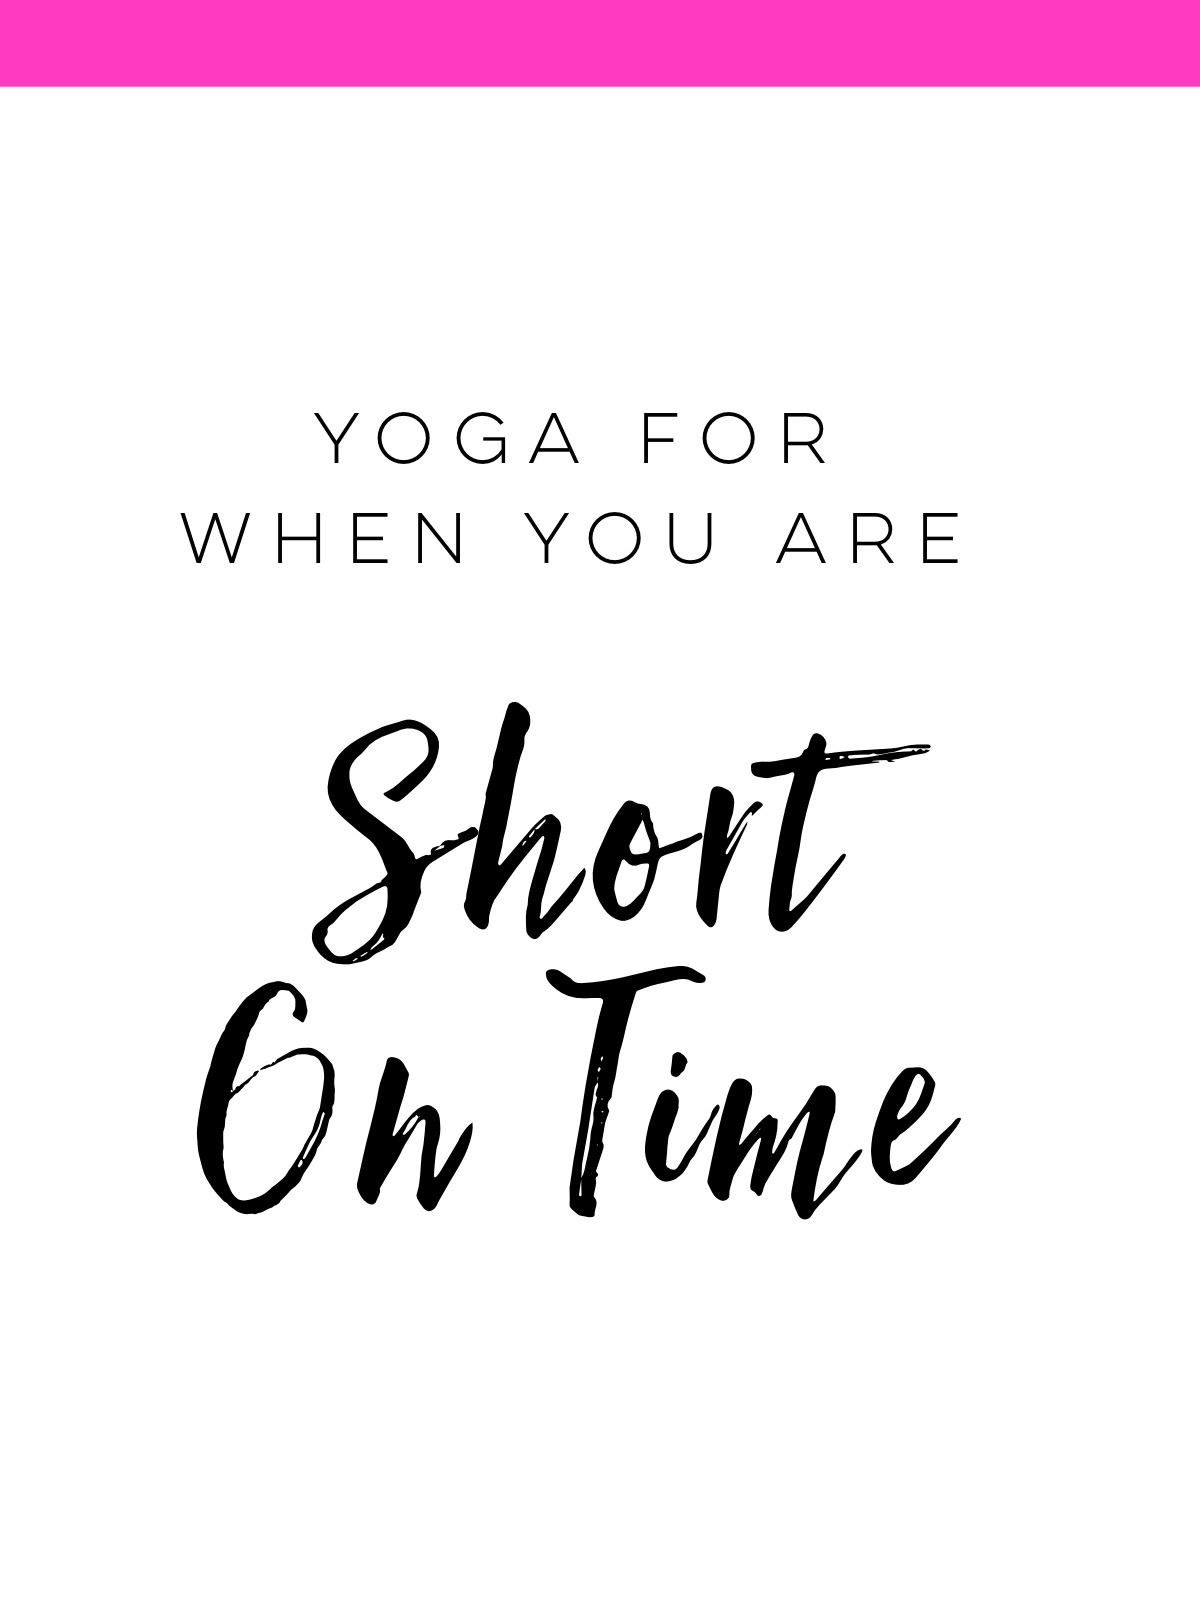 Yoga+For+When+You+Are+Short+On+Time.jpg